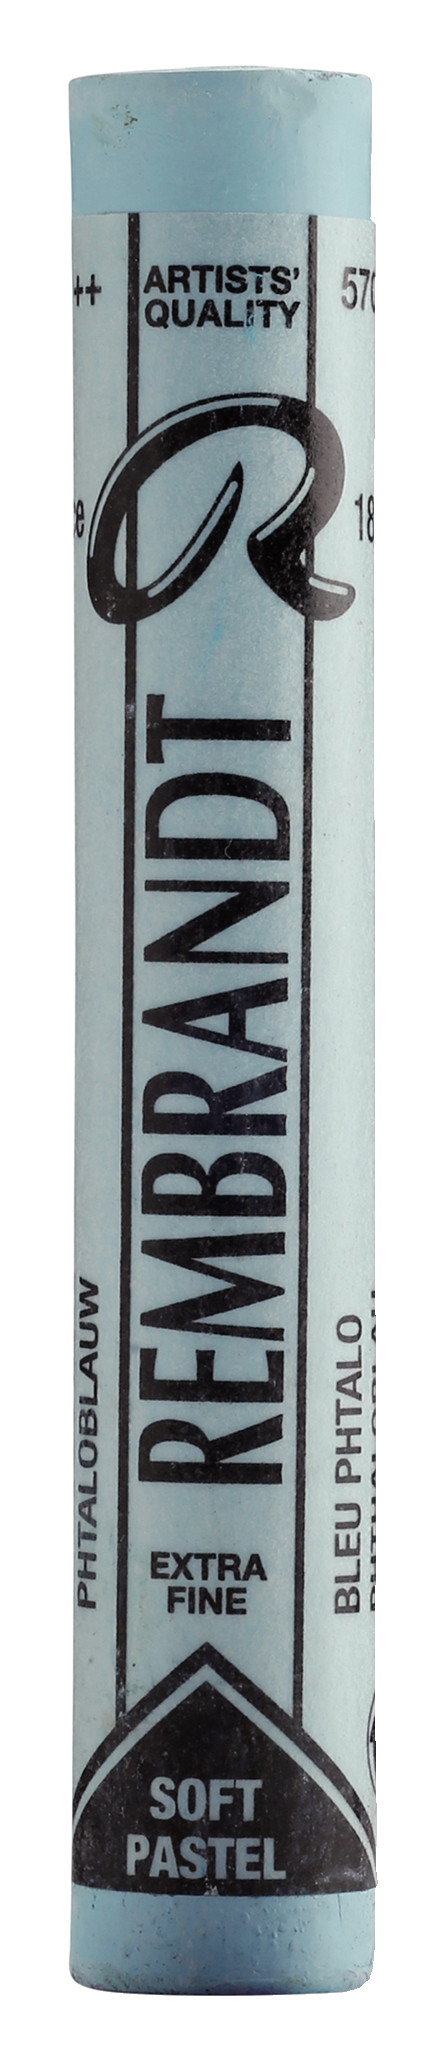 Rembrandt Soft Pastel Round Full Stick Phthalo Blue(9) (570.9)